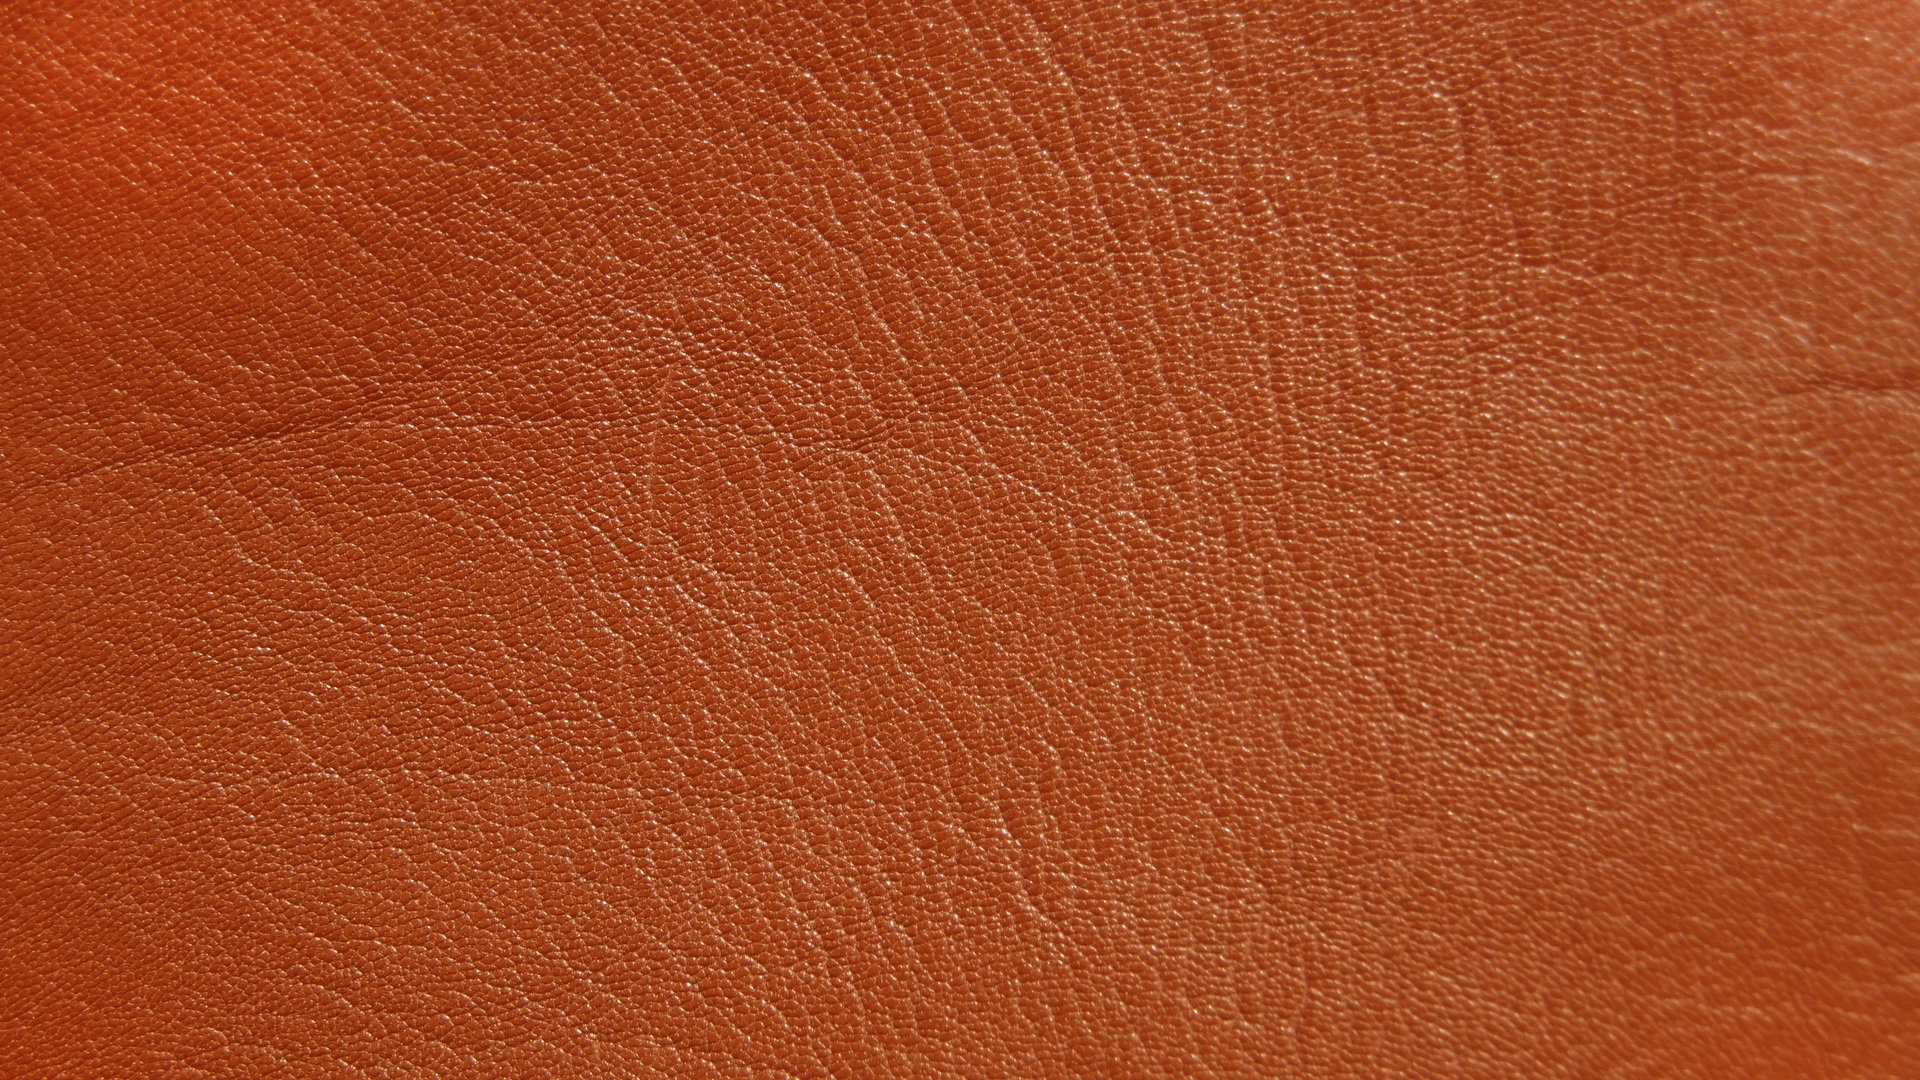 brown leather wallpaper  1920x1080 Brown Leather 5k Laptop Full HD 1080P HD 4k Wallpapers ...